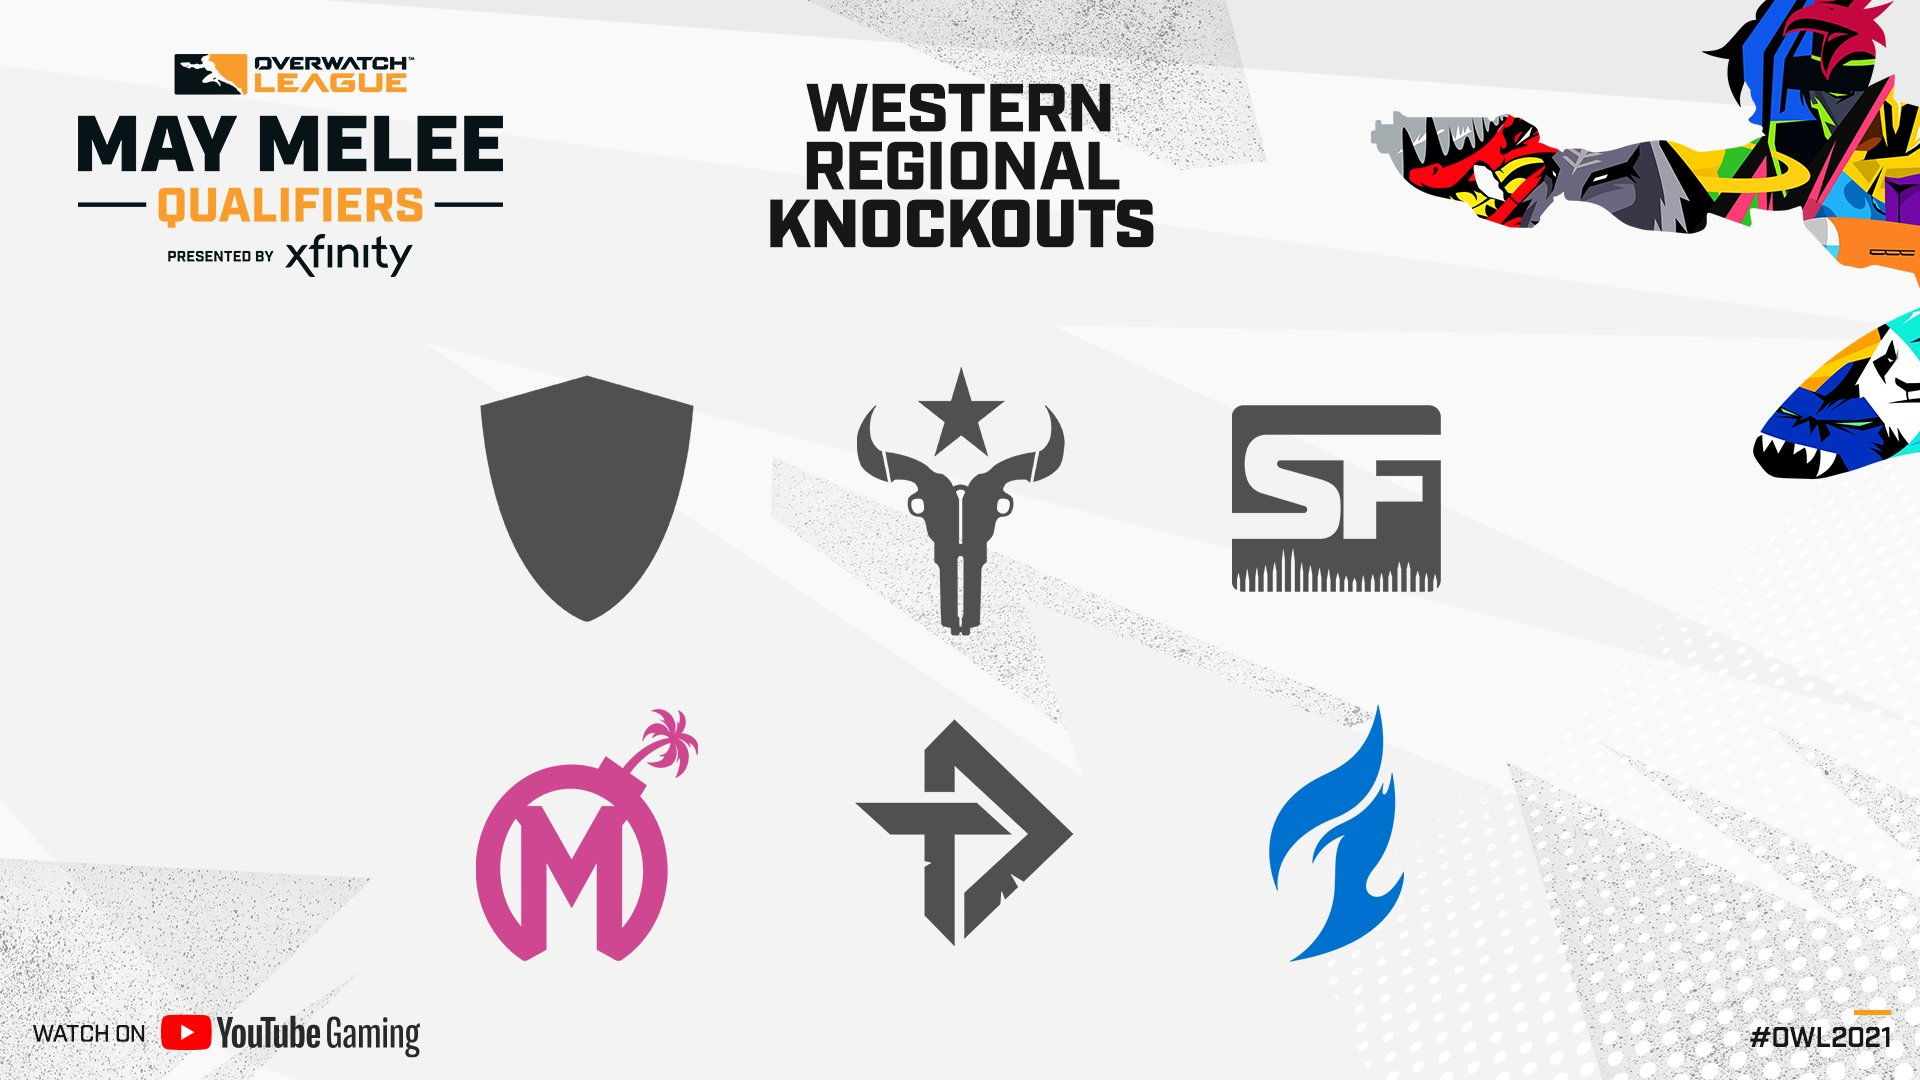 The Houston Outlaws knocked out of the May Melee qualifiers.